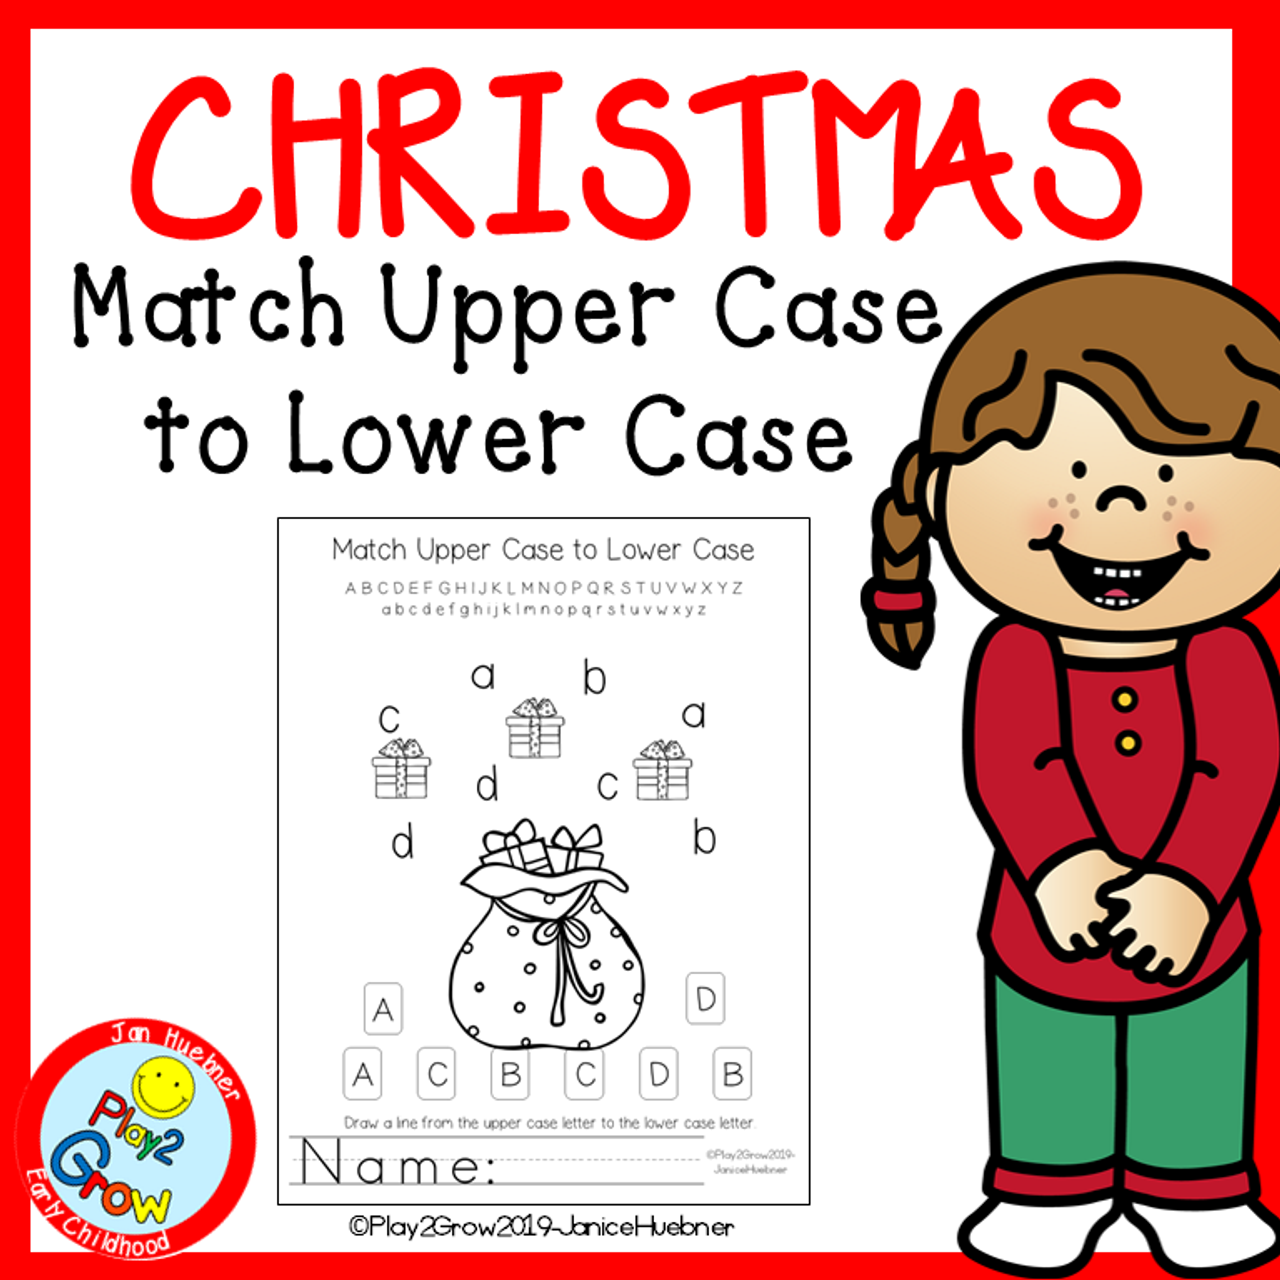 CHRISTMAS Match Upper Case to Lower Case